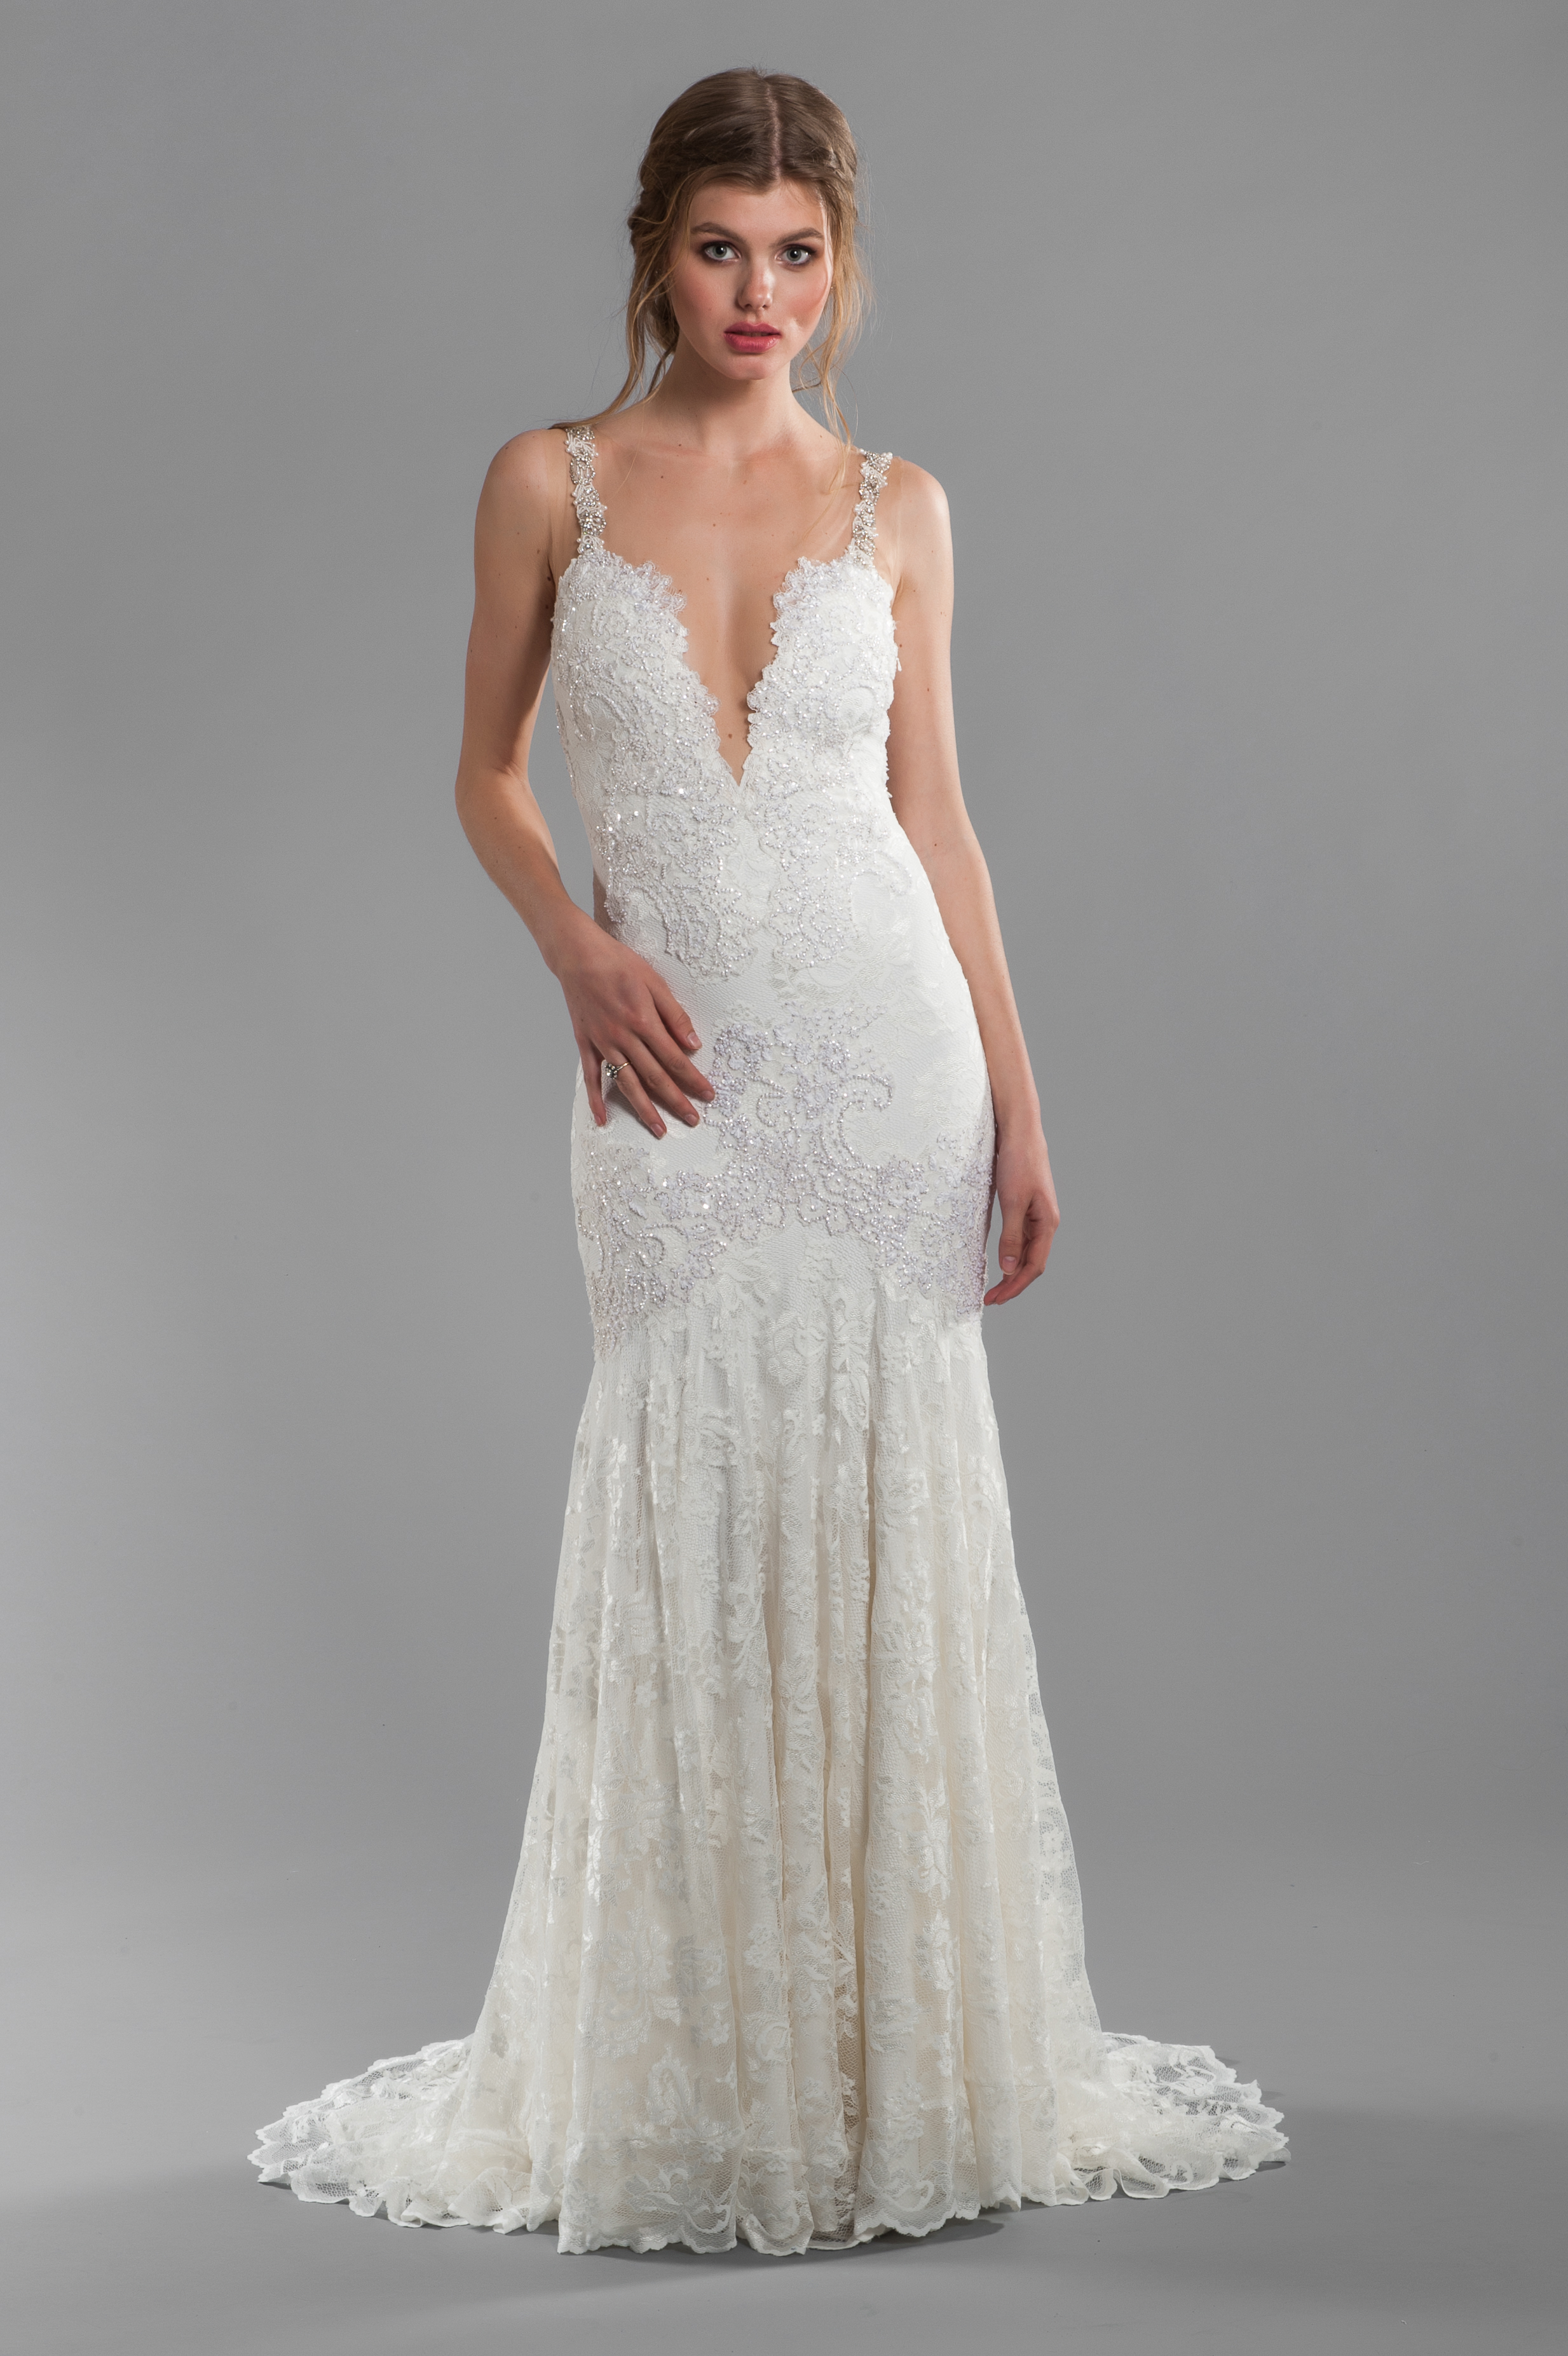 Spaghetti Strap V Neckline Beaded And Embroidered Lace Mermaid